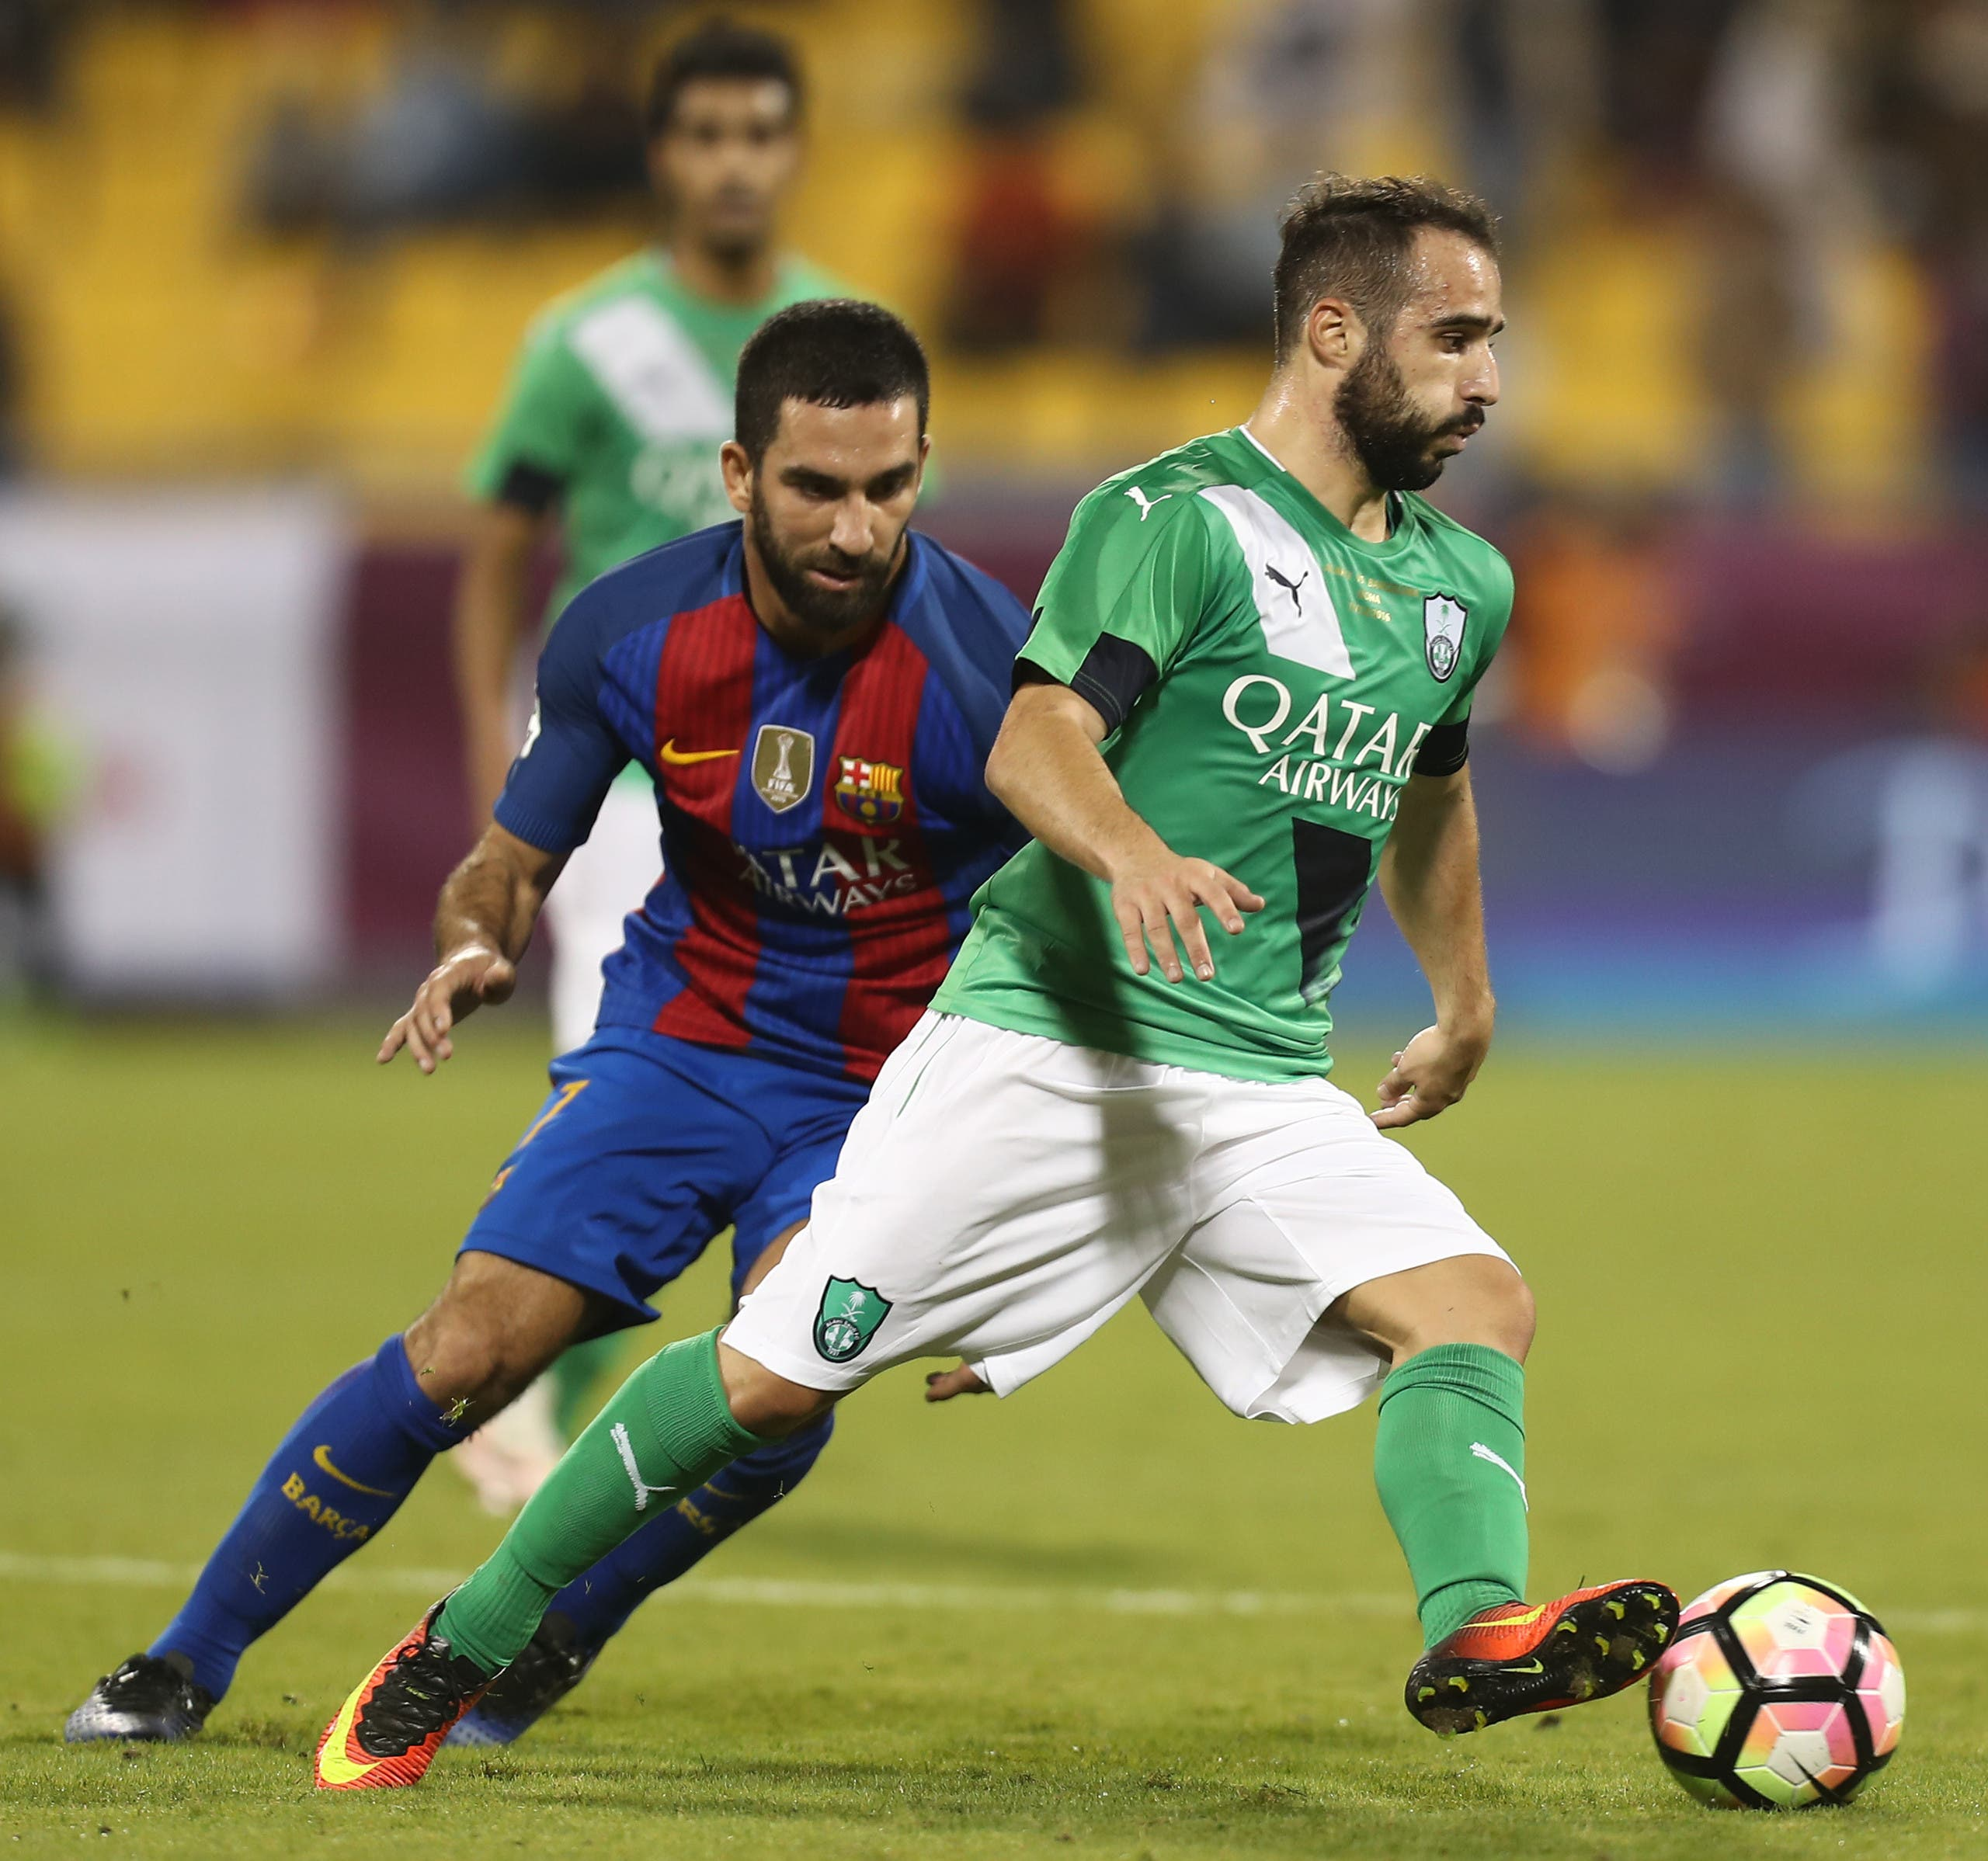 FC Barcelona's Arda Turan (L) vies for the ball with Al-Ahly's Giannis Fetfatzidis during a friendly football match between FC Barcelona and Saudi Arabia's Al-Ahli FC on December 13, 2016 in the Qatari capital Doha. (AFP)